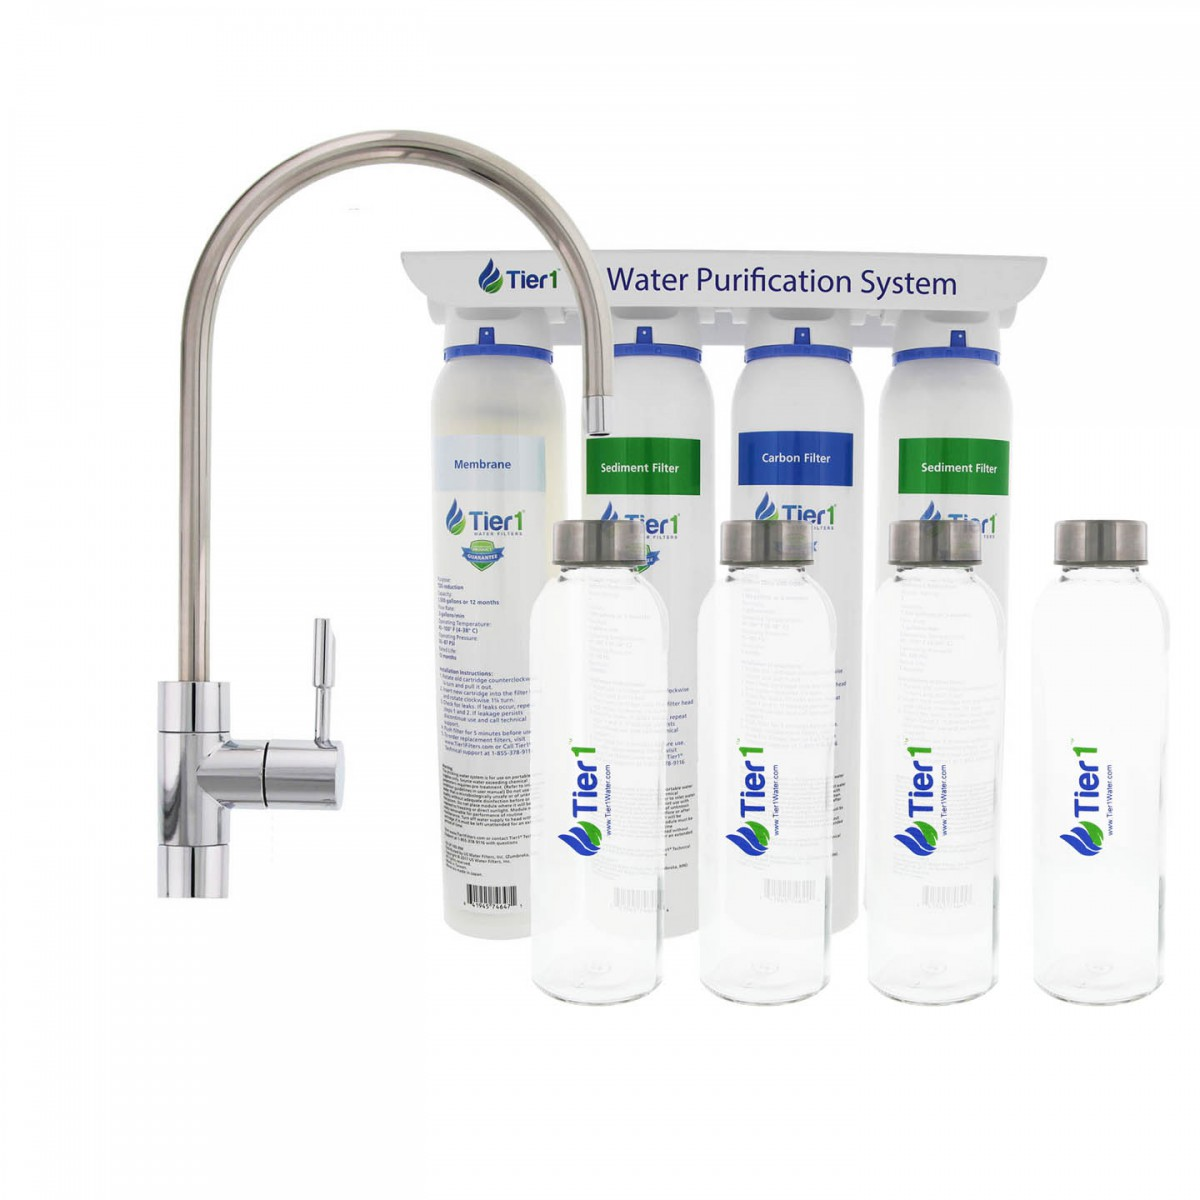 Carbon Water Filter System 4 Stage Ultra Filtration Hollow Fiber Quick Change Drinking Water Filter System With 4 Reusable Glass Water Bottles By Tier1